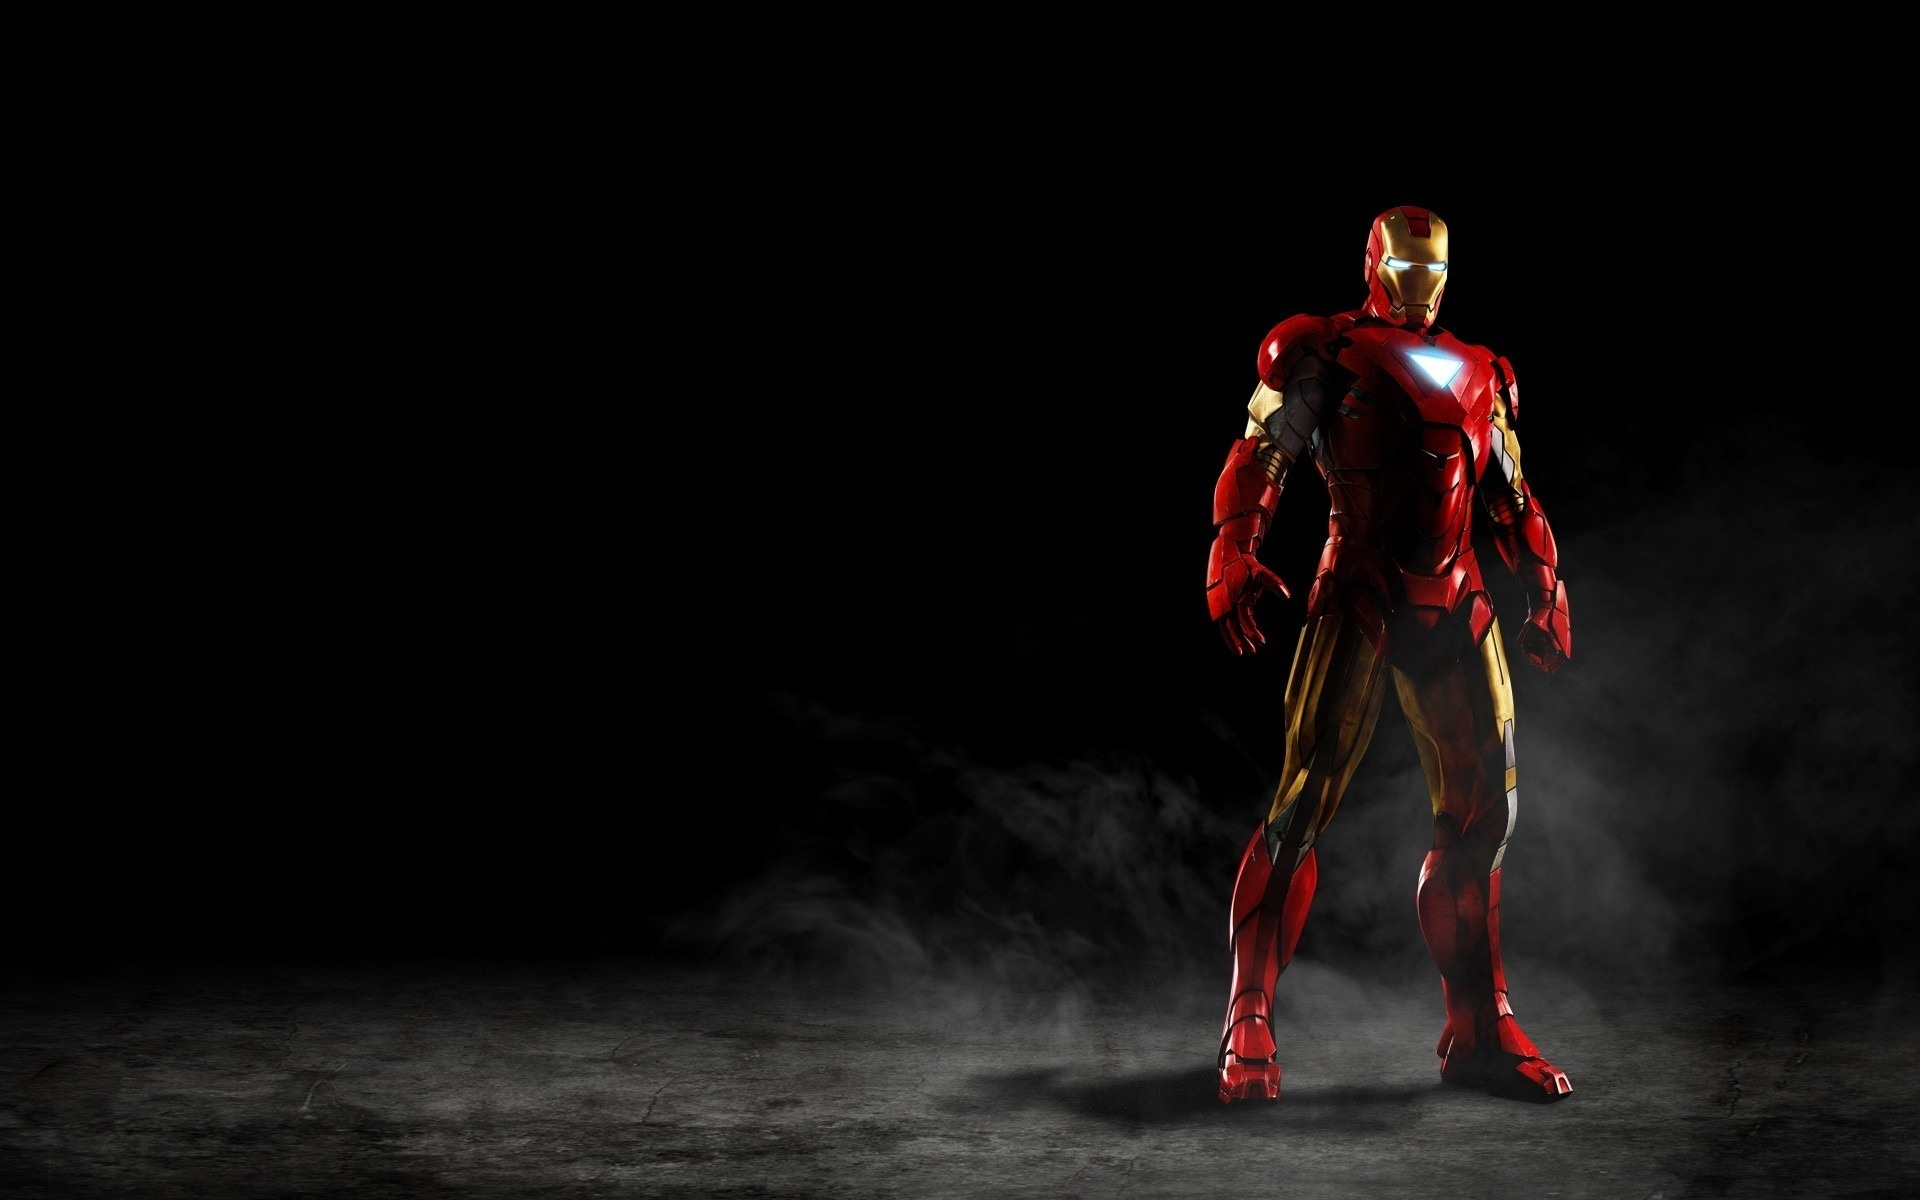 Amazing Iron Man Wallpapers HD Wallpapers 1920x1200